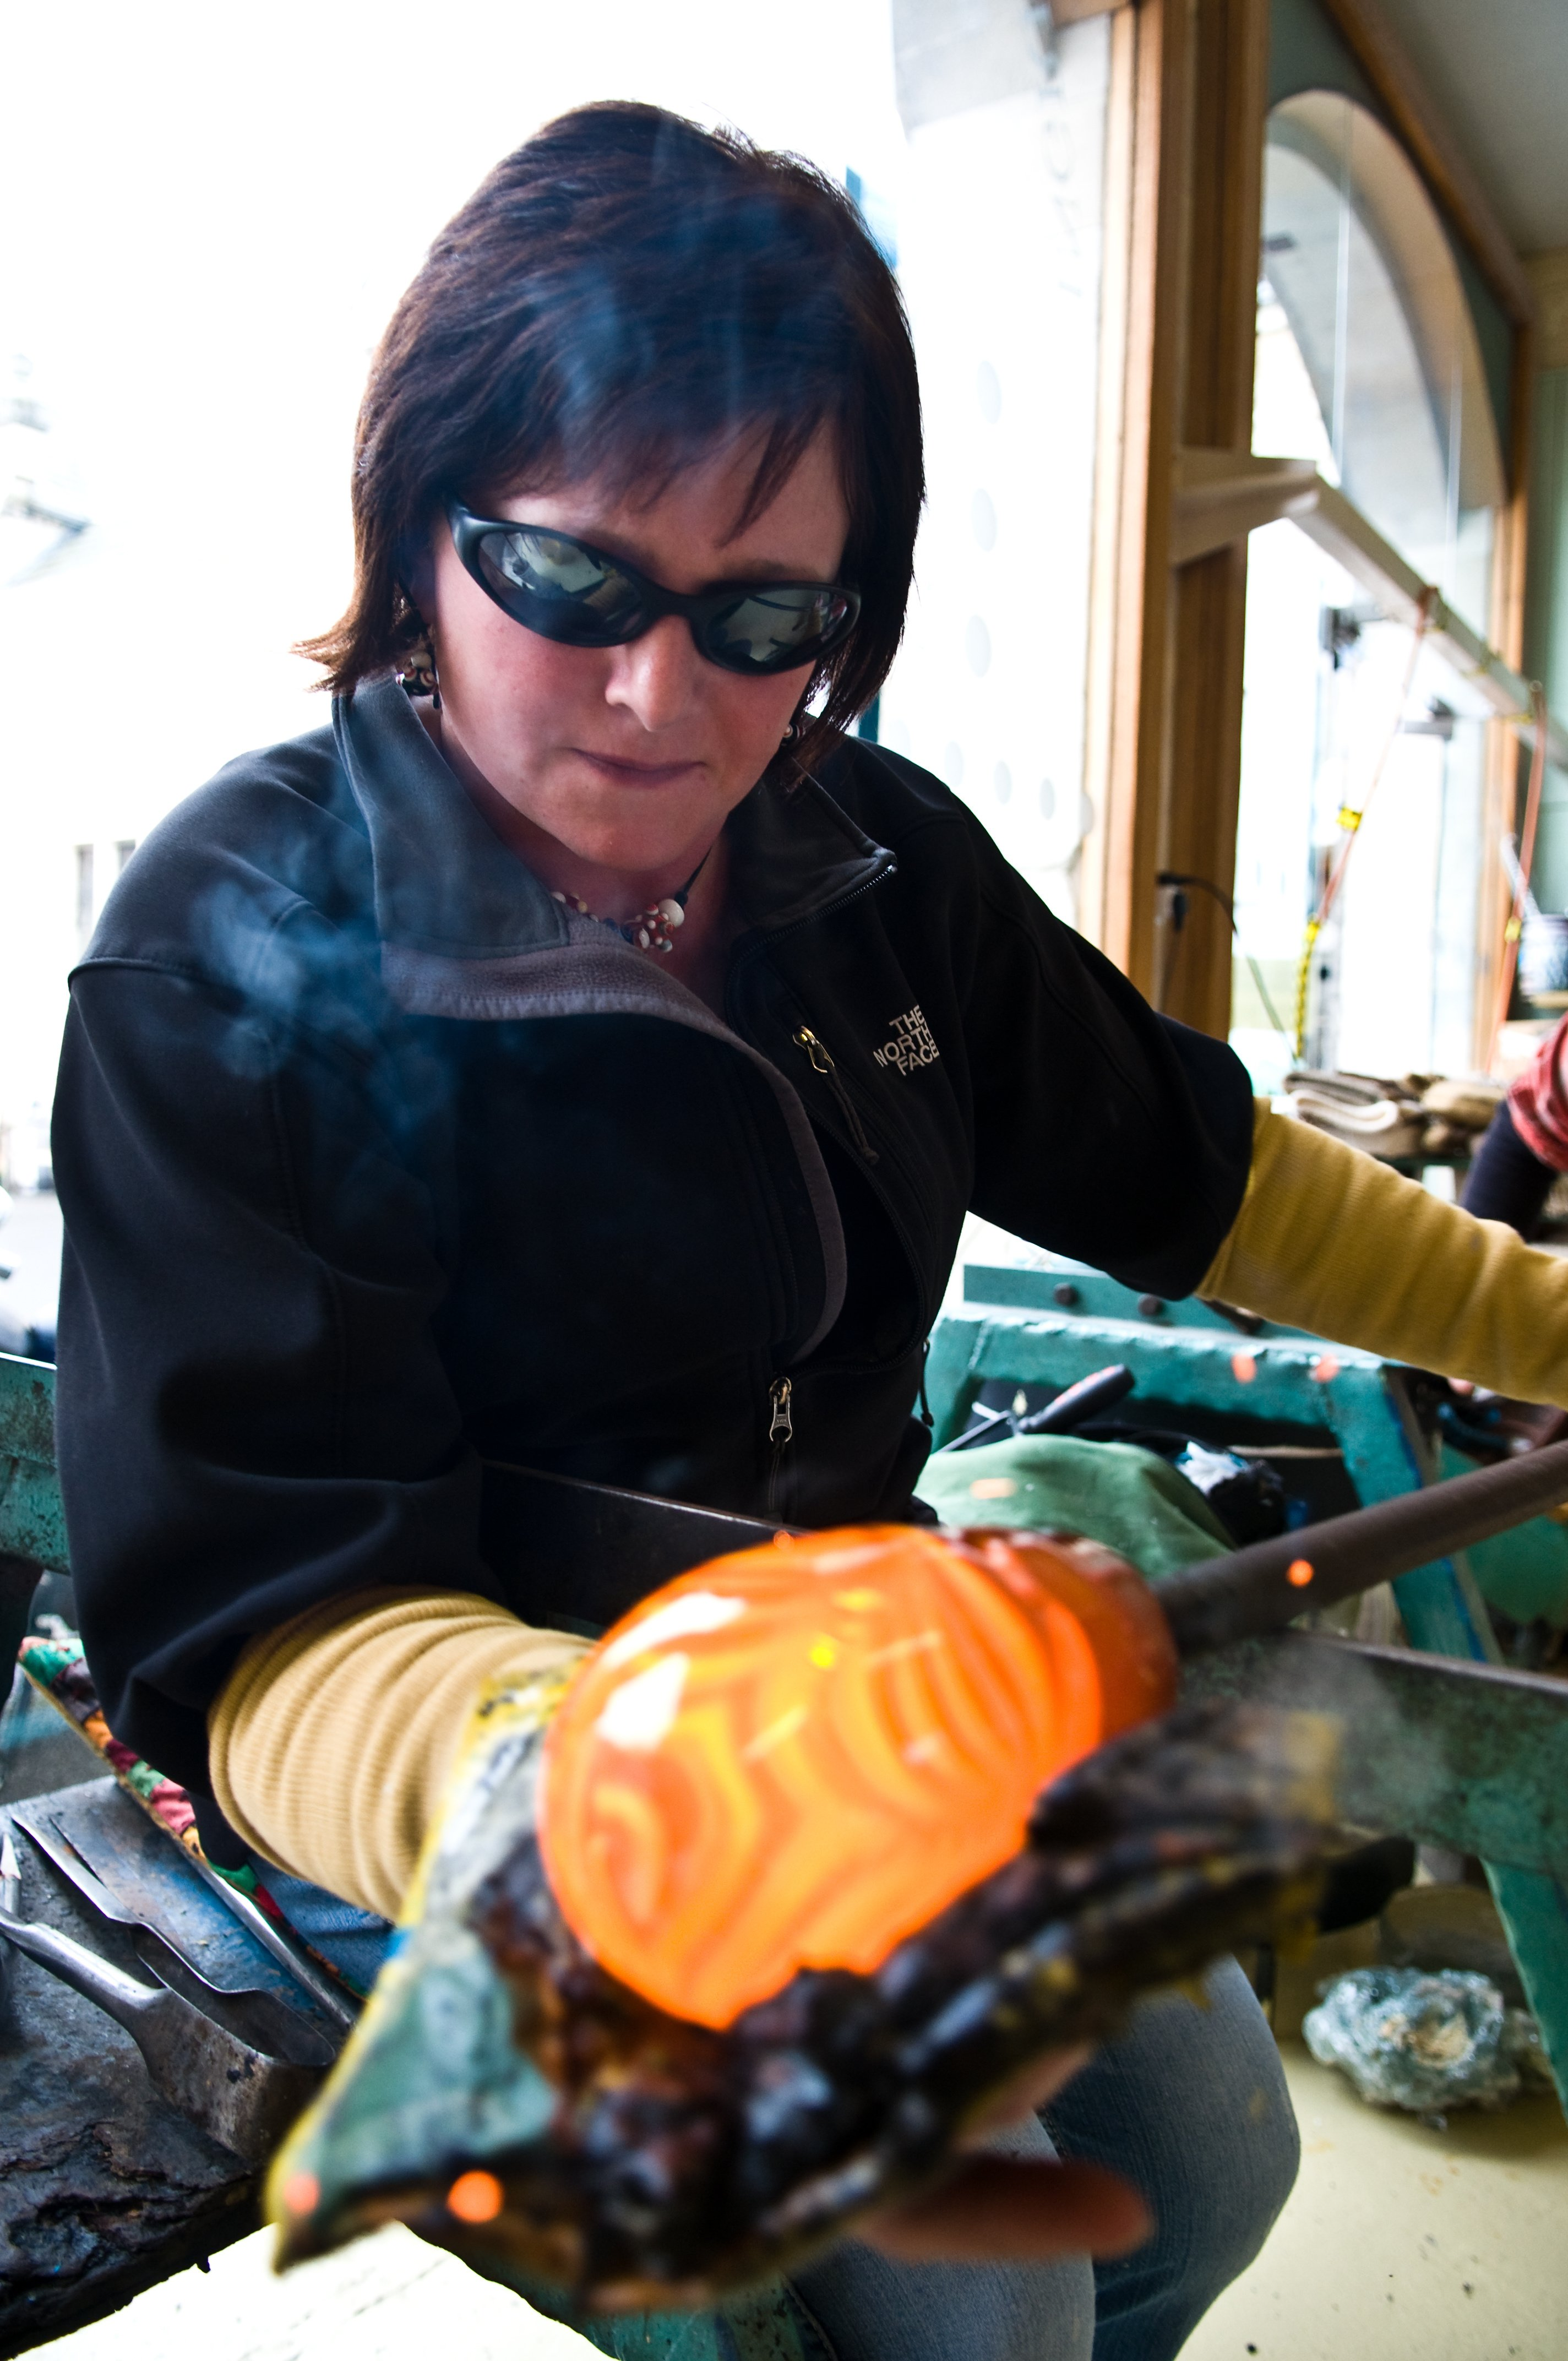 Ingrid glassblowing in her studio at Thoresby